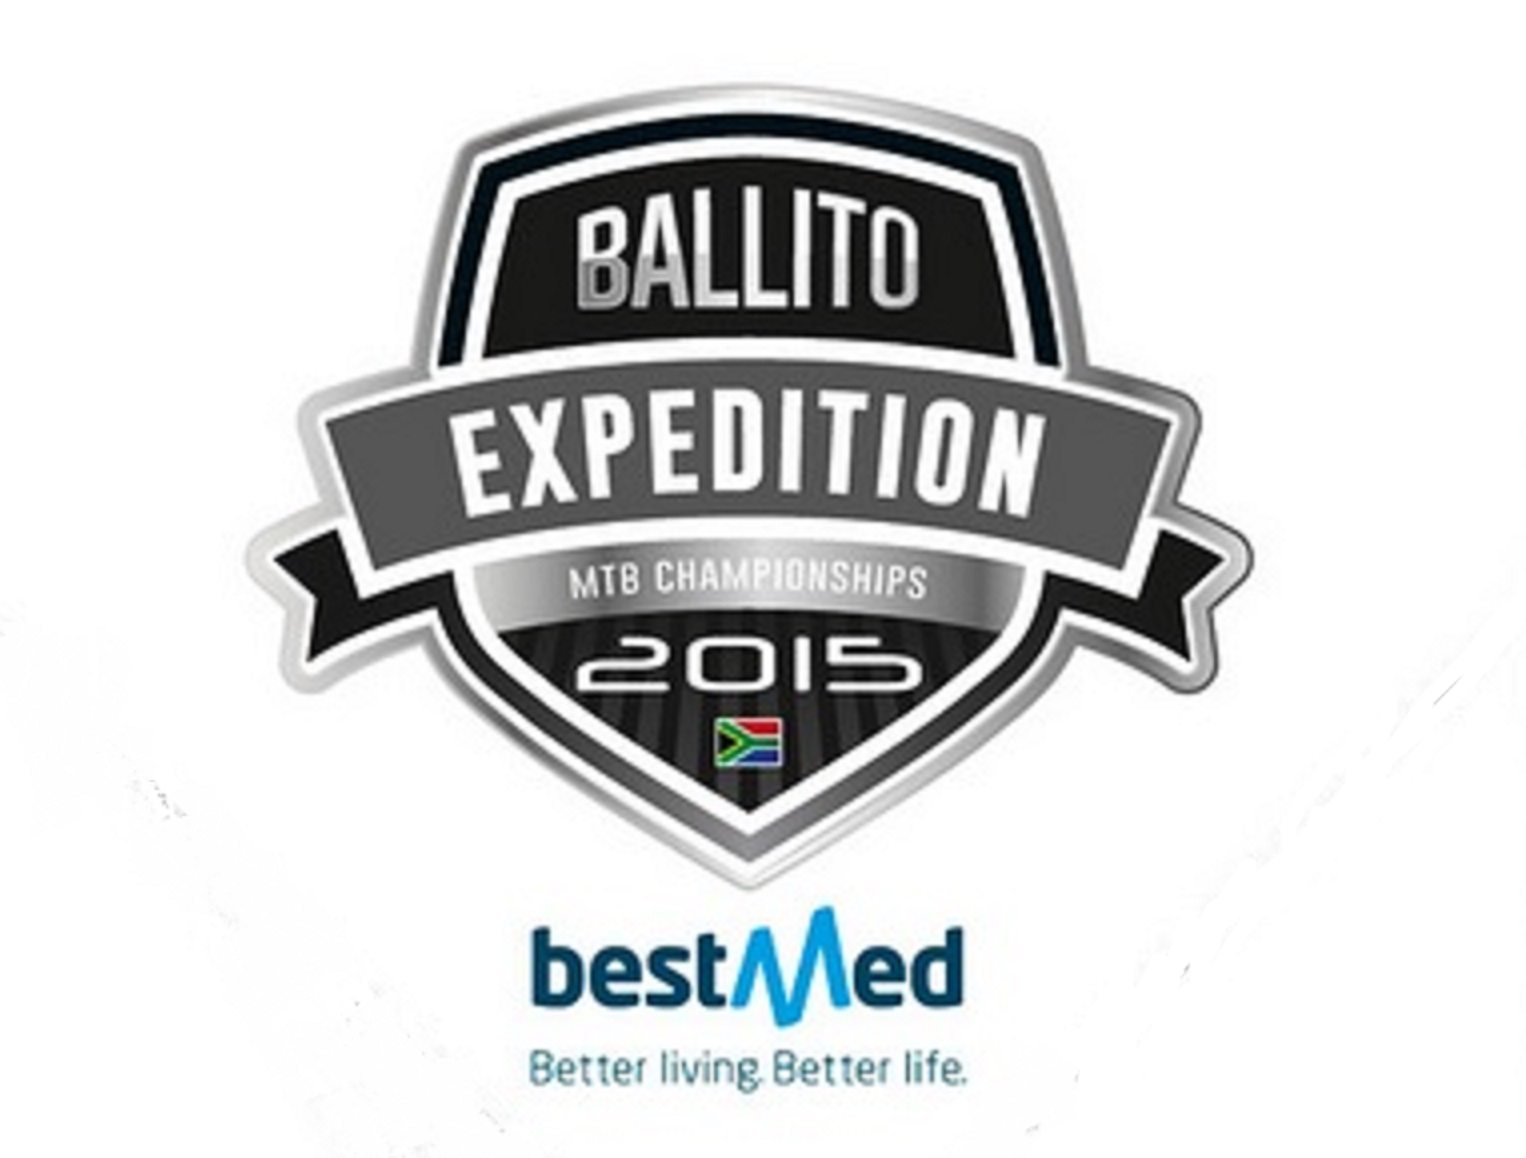 Ballito Expedition logo